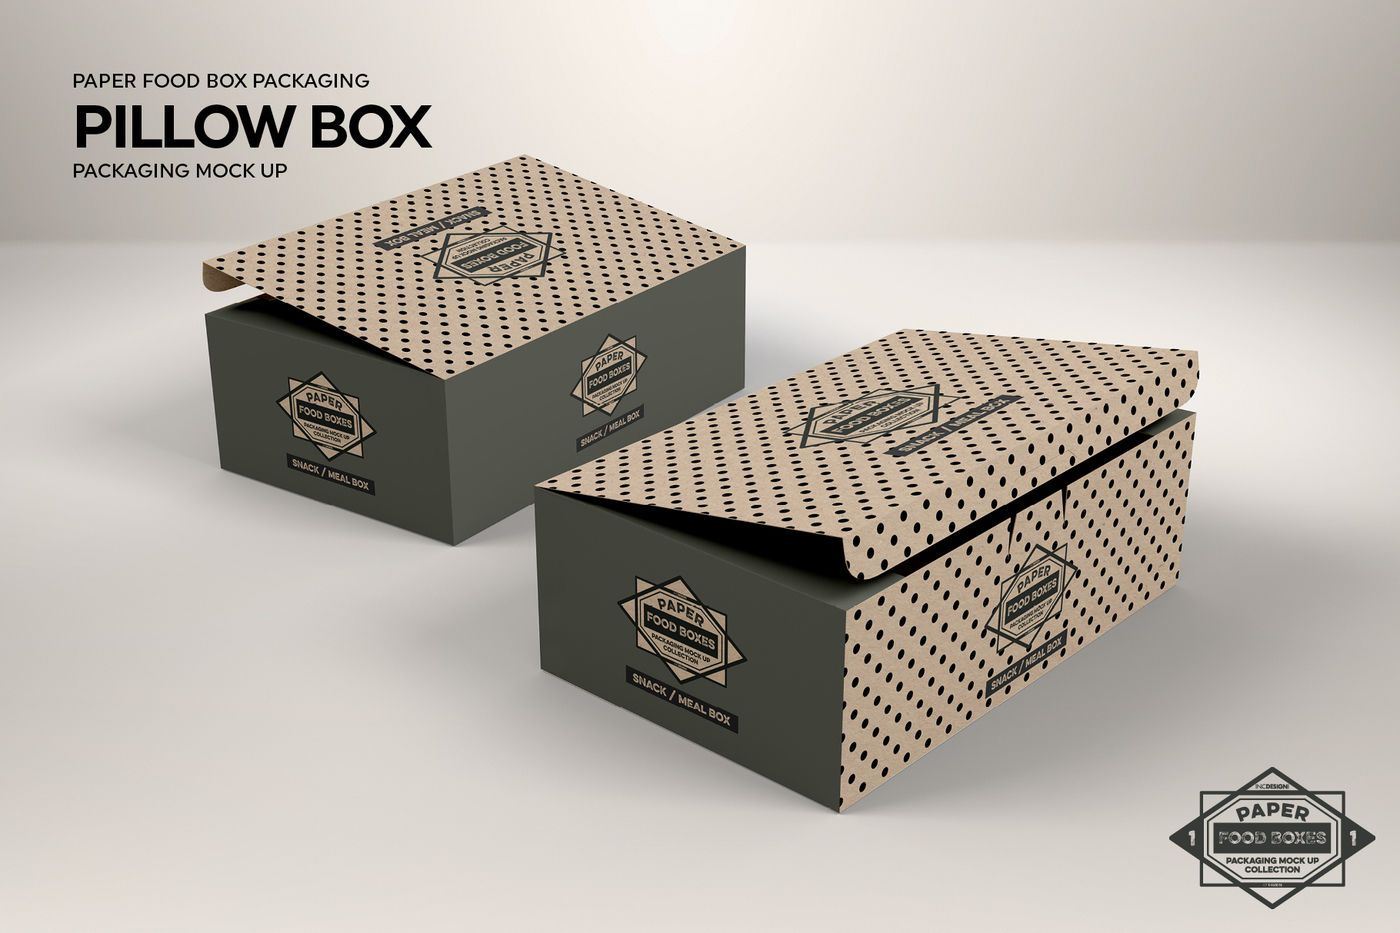 Download Snack Or Meal Box Packaging Mockup By Inc Design Studio Thehungryjpeg Com Box Sponsored Packaging In 2020 Packaging Mockup Food Box Packaging Design Mockup Free